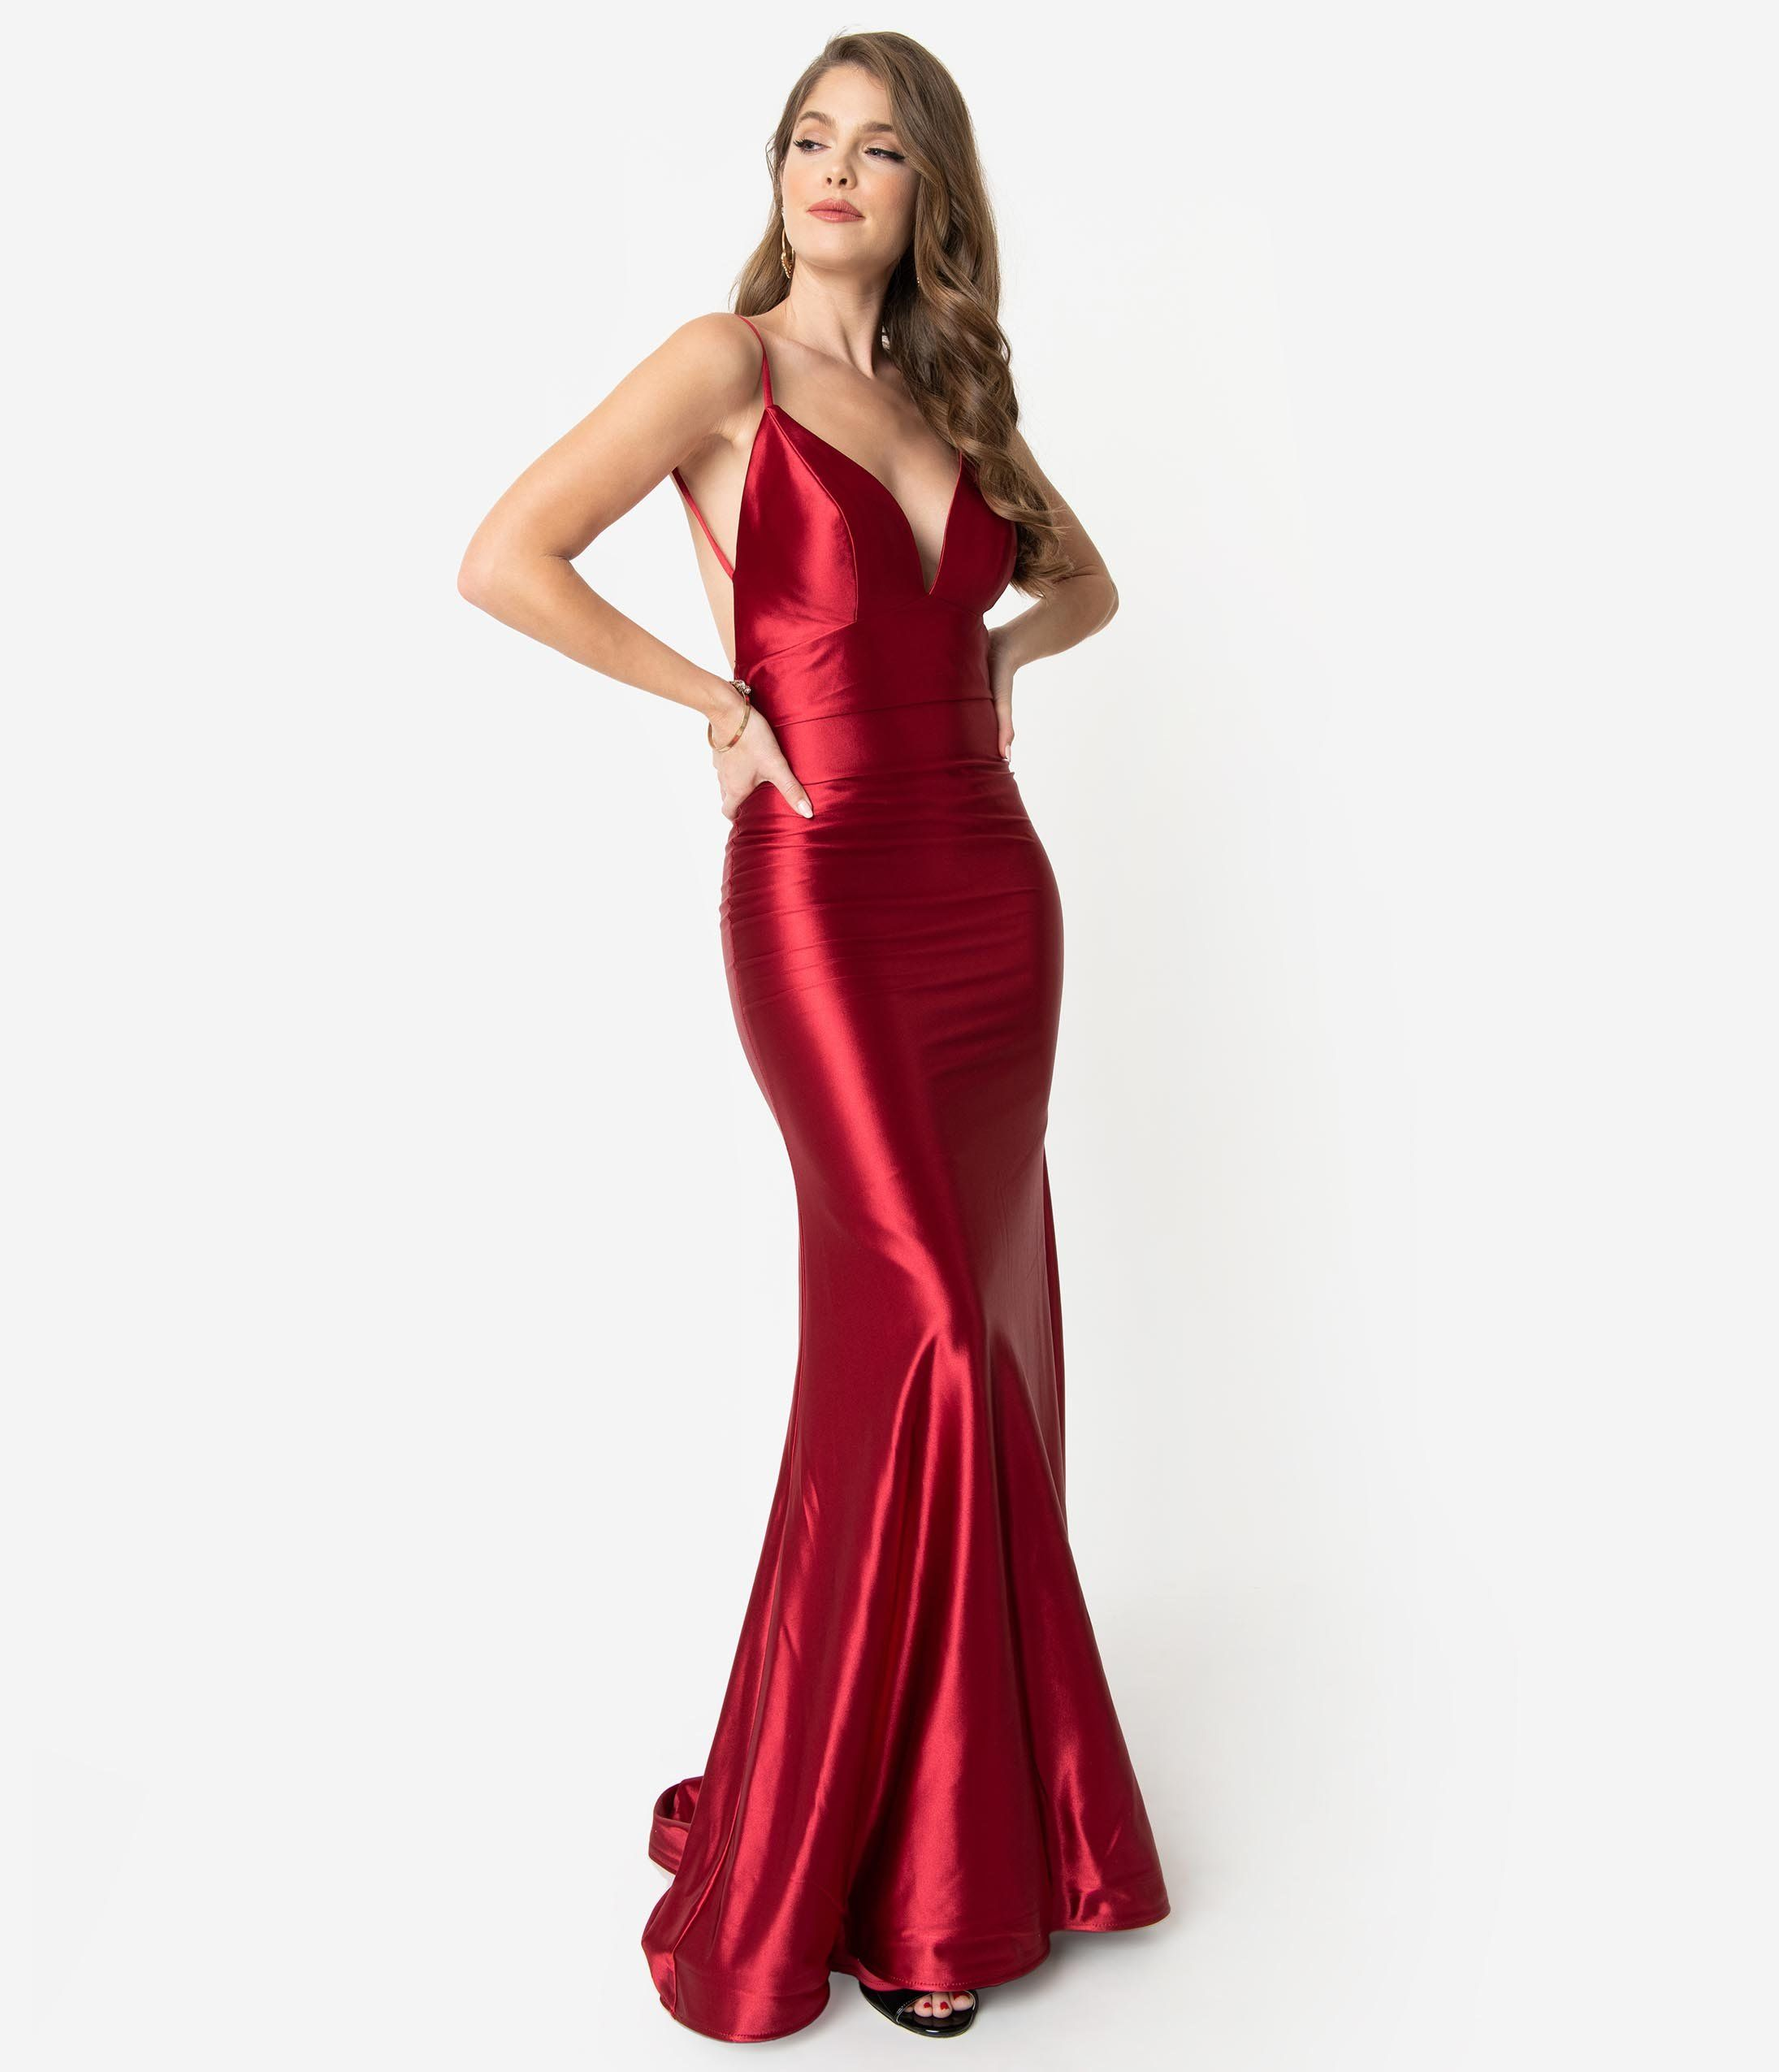 Old Hollywood Dresses 1930s 1940s 1950s Long Fitted Dresses Evening Dresses Prom Celebrity Cocktail Dress [ 2550 x 2190 Pixel ]